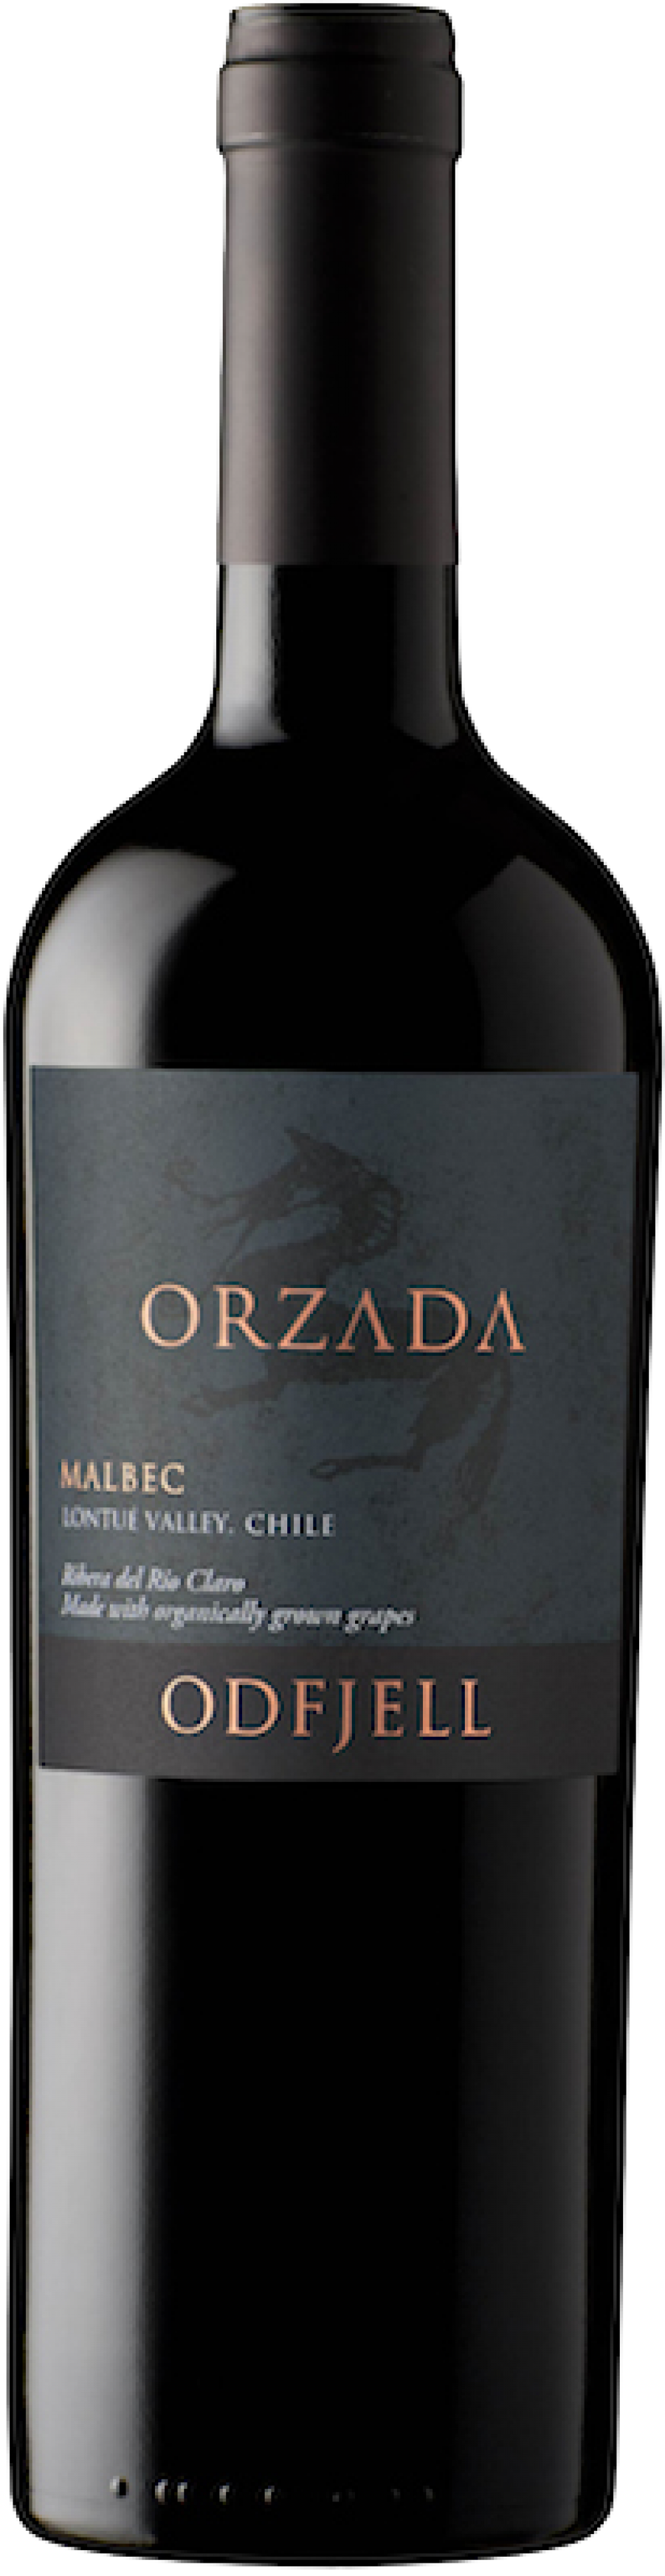 files/images/wines/Chile/odfjell-vineyards/TCOM27711_pic_big.png